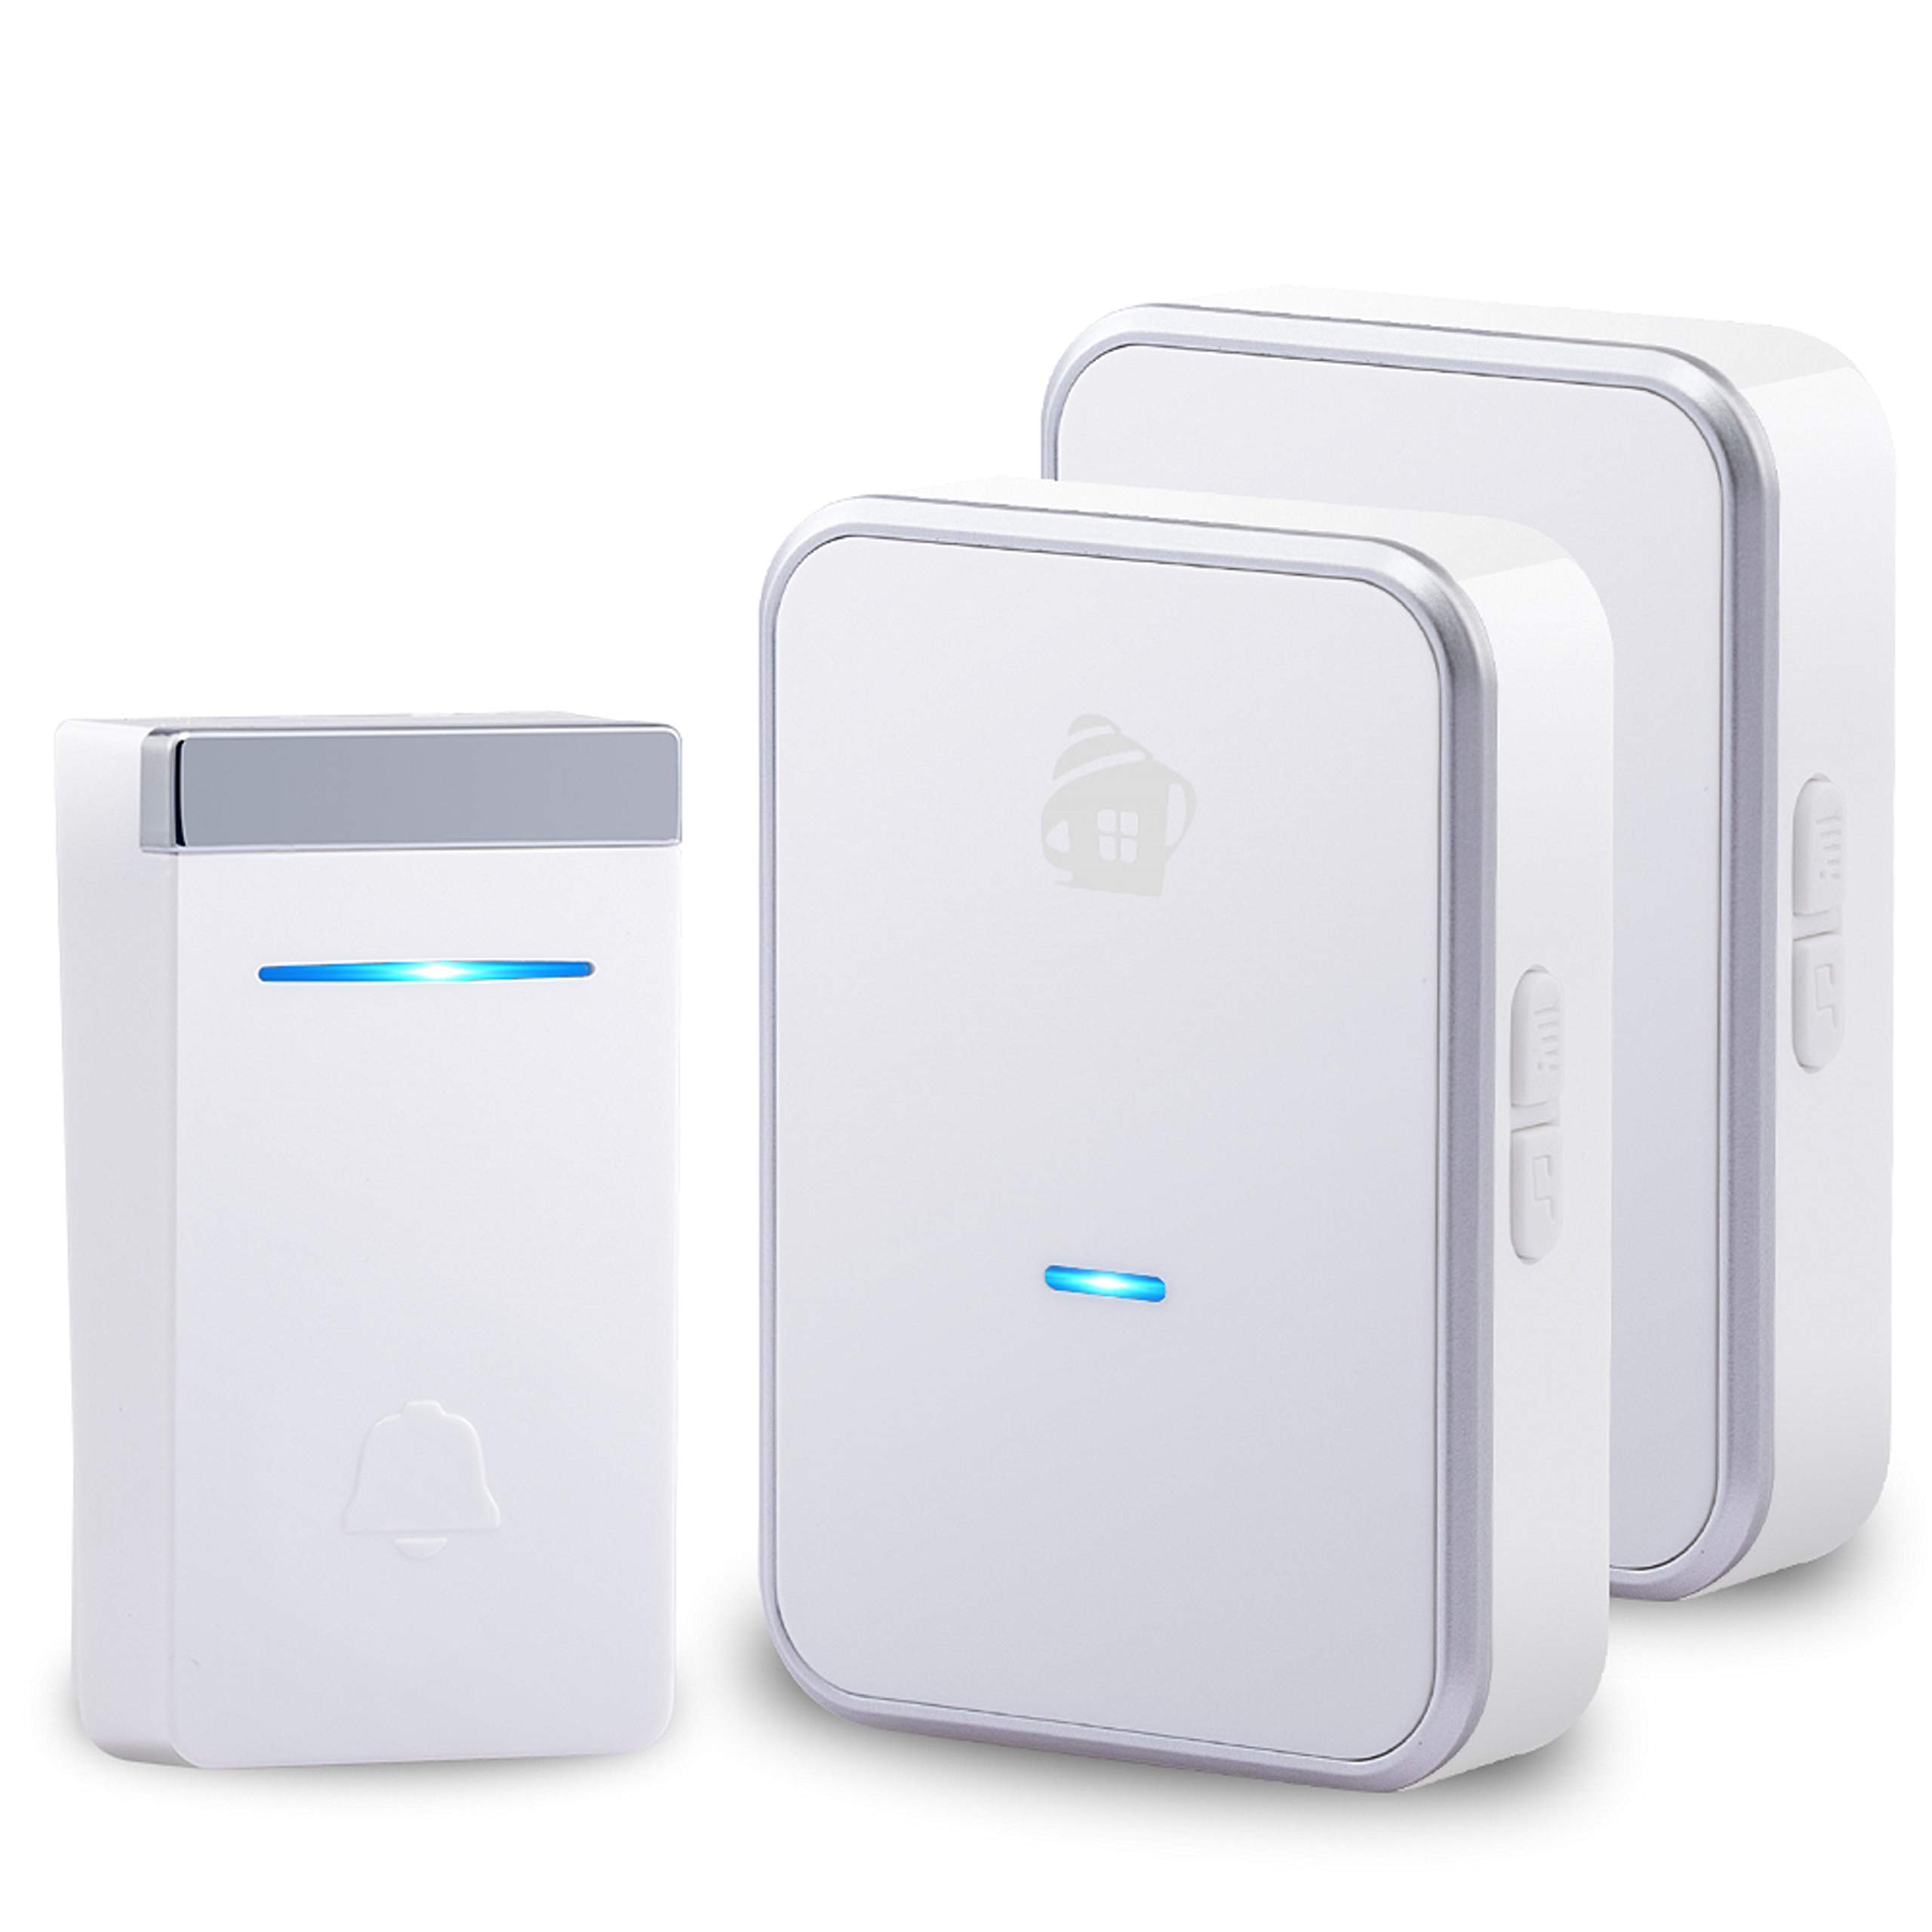 EMHOME Kinetic Wireless Doorbell, No Battery Required Push Button and Plug-in Receiver, Waterproof Doorbell Ring Chime for Kids Range Over 1000 Feets